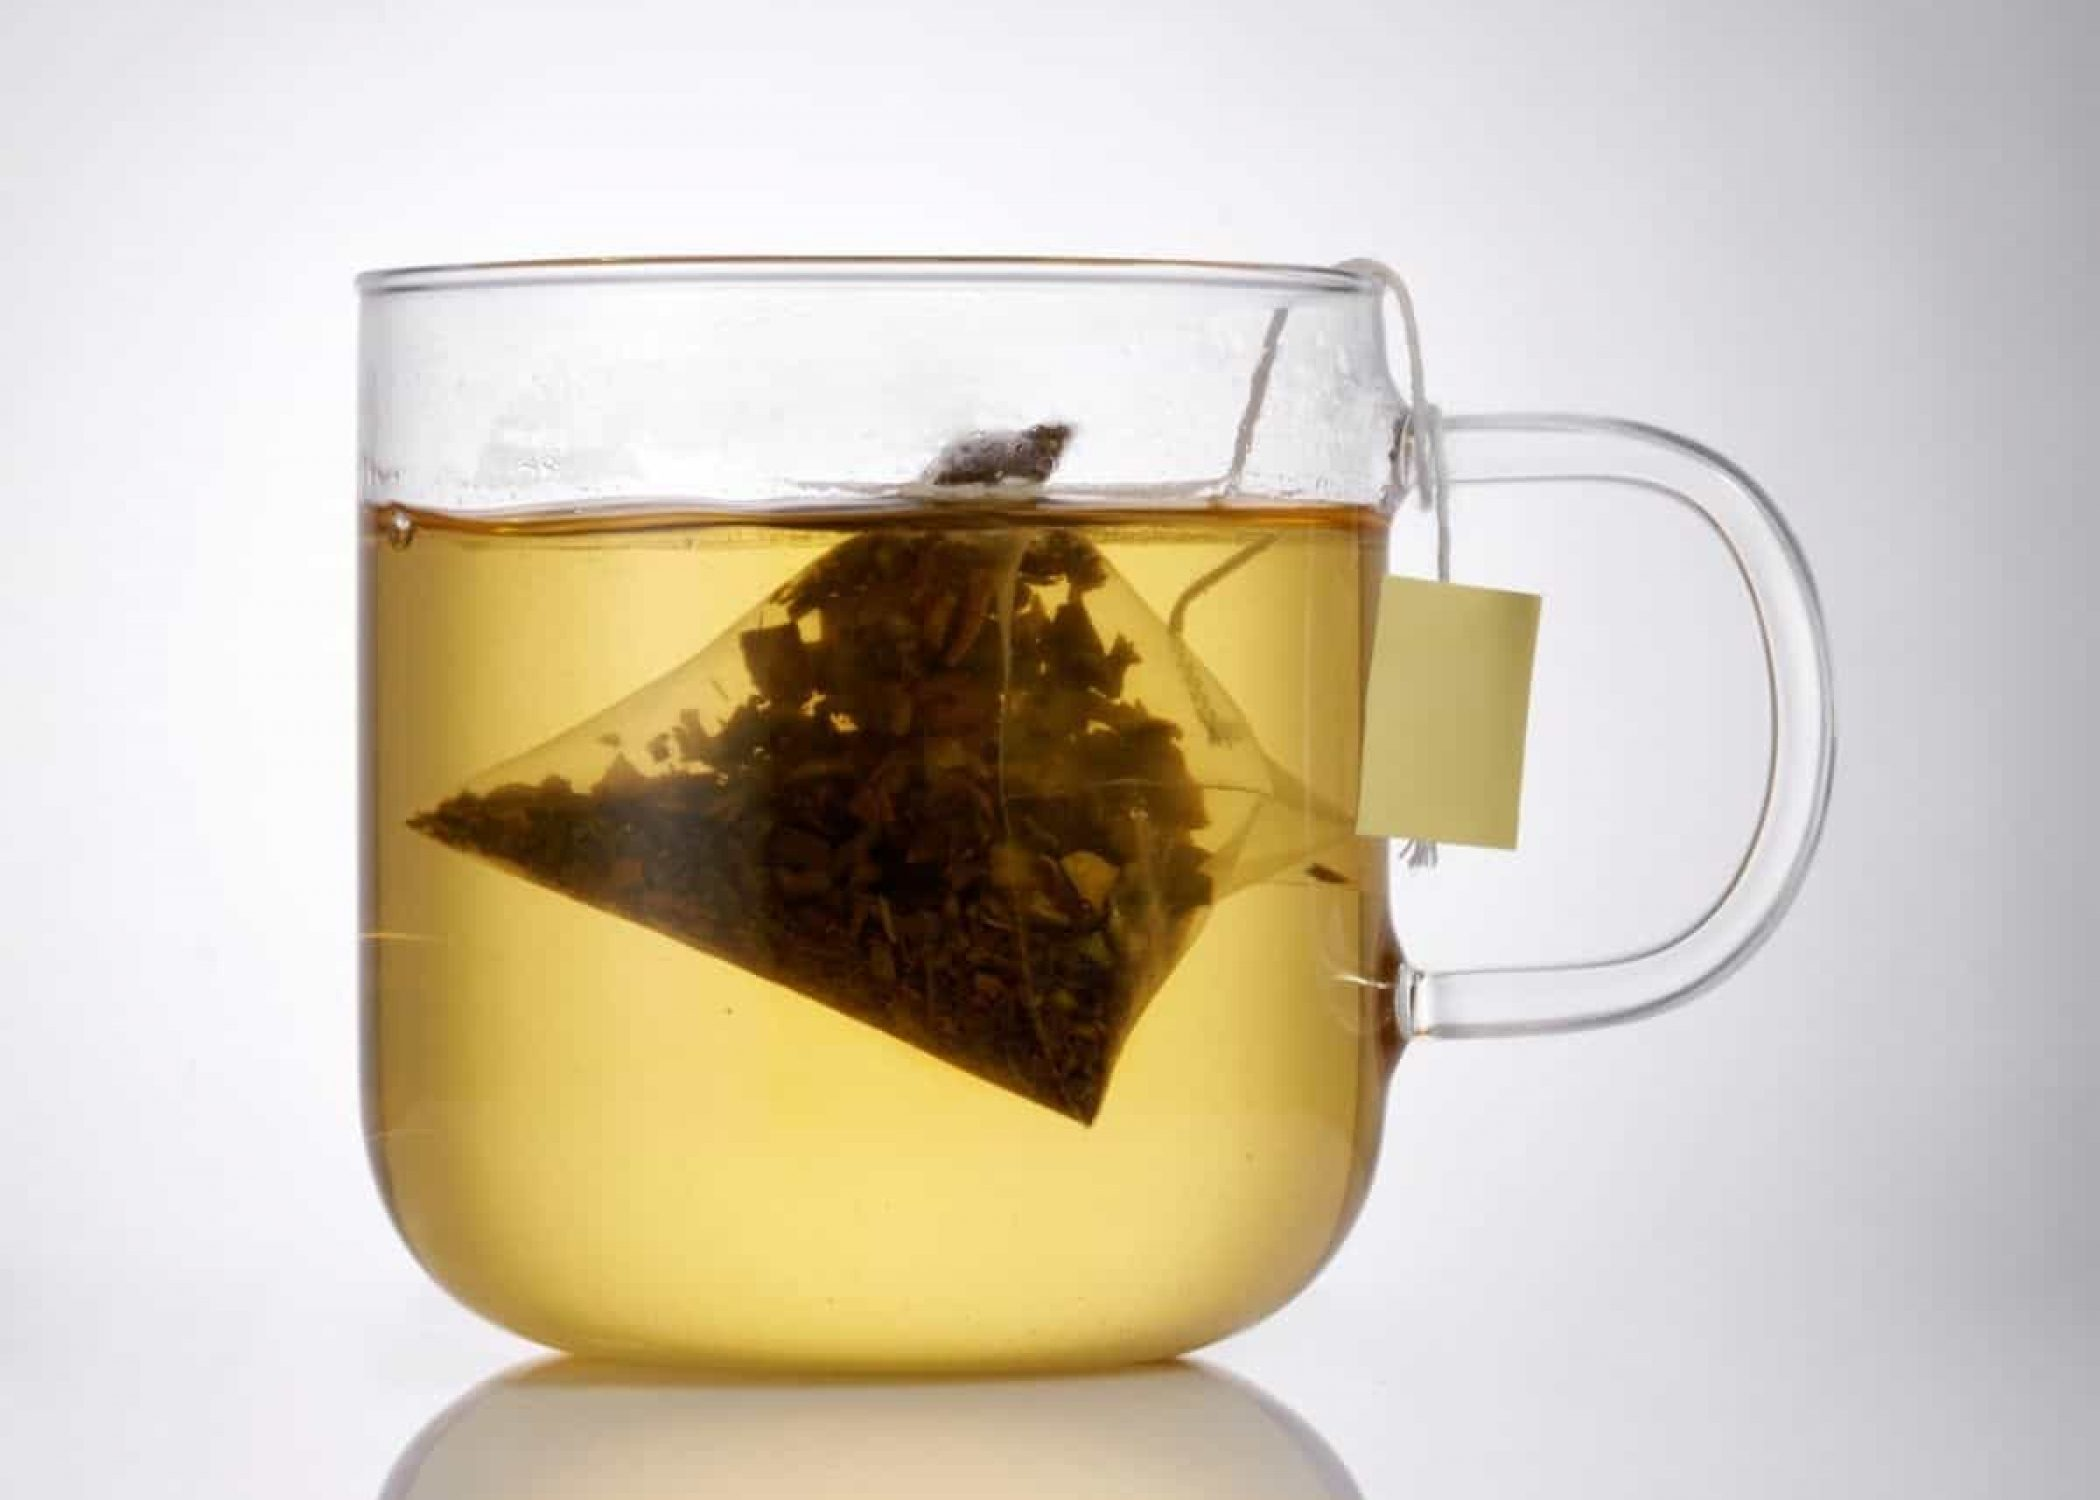 Steeping Times for Different Teas